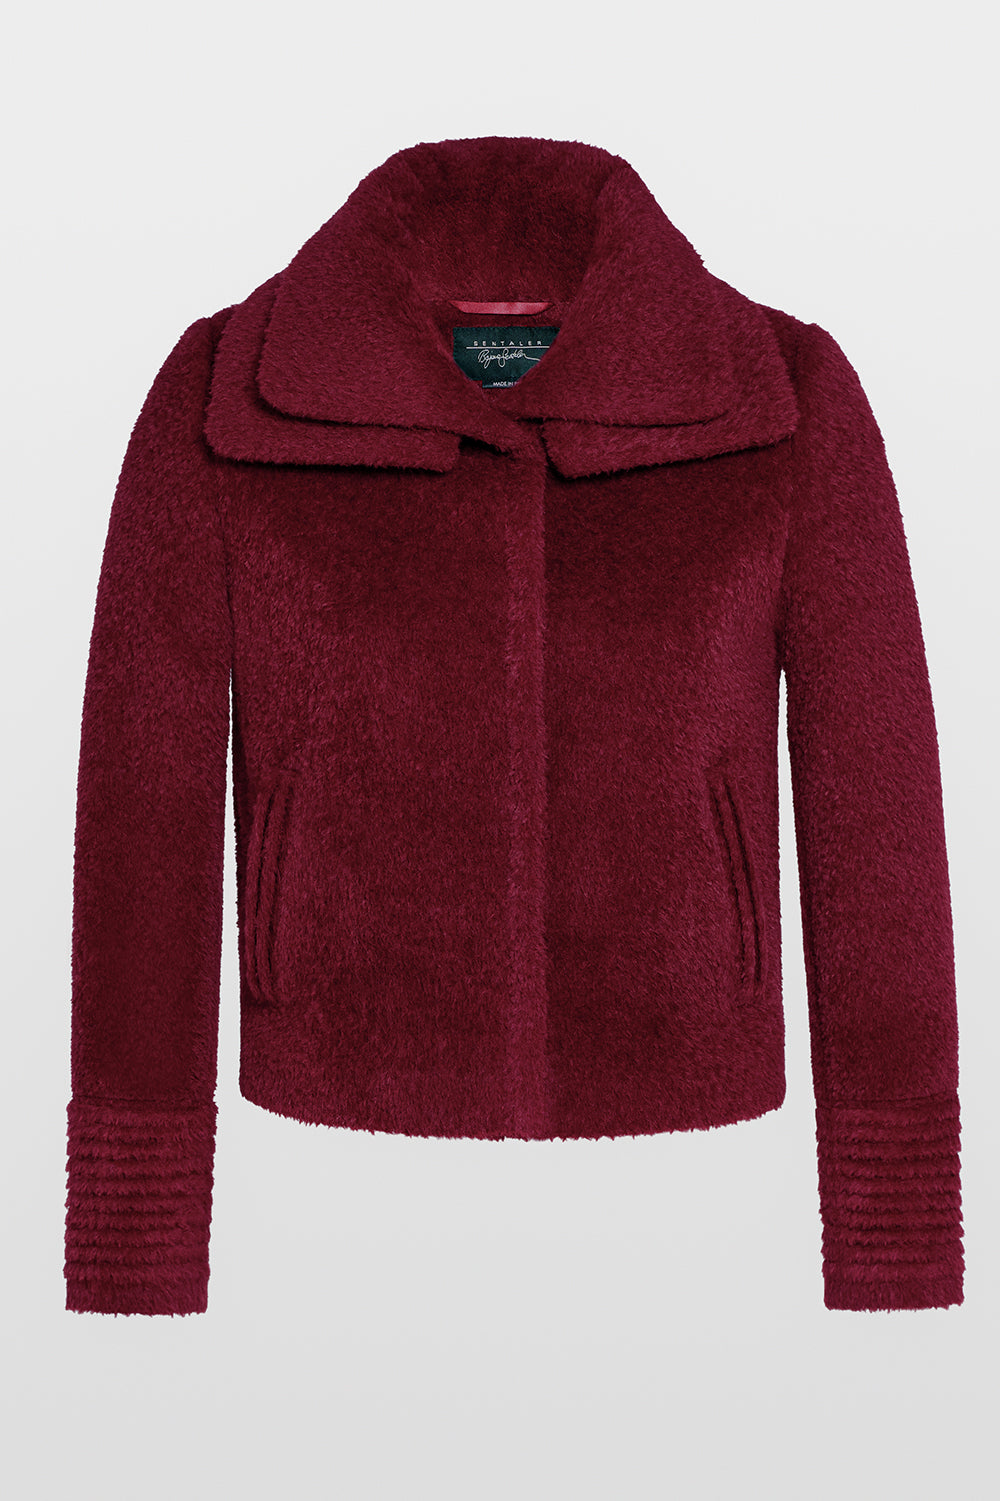 Sentaler Bouclé Alpaca Moto Jacket with Signature Double Collar featured in Bouclé Alpaca and available in Garnet Red. Seen off model.